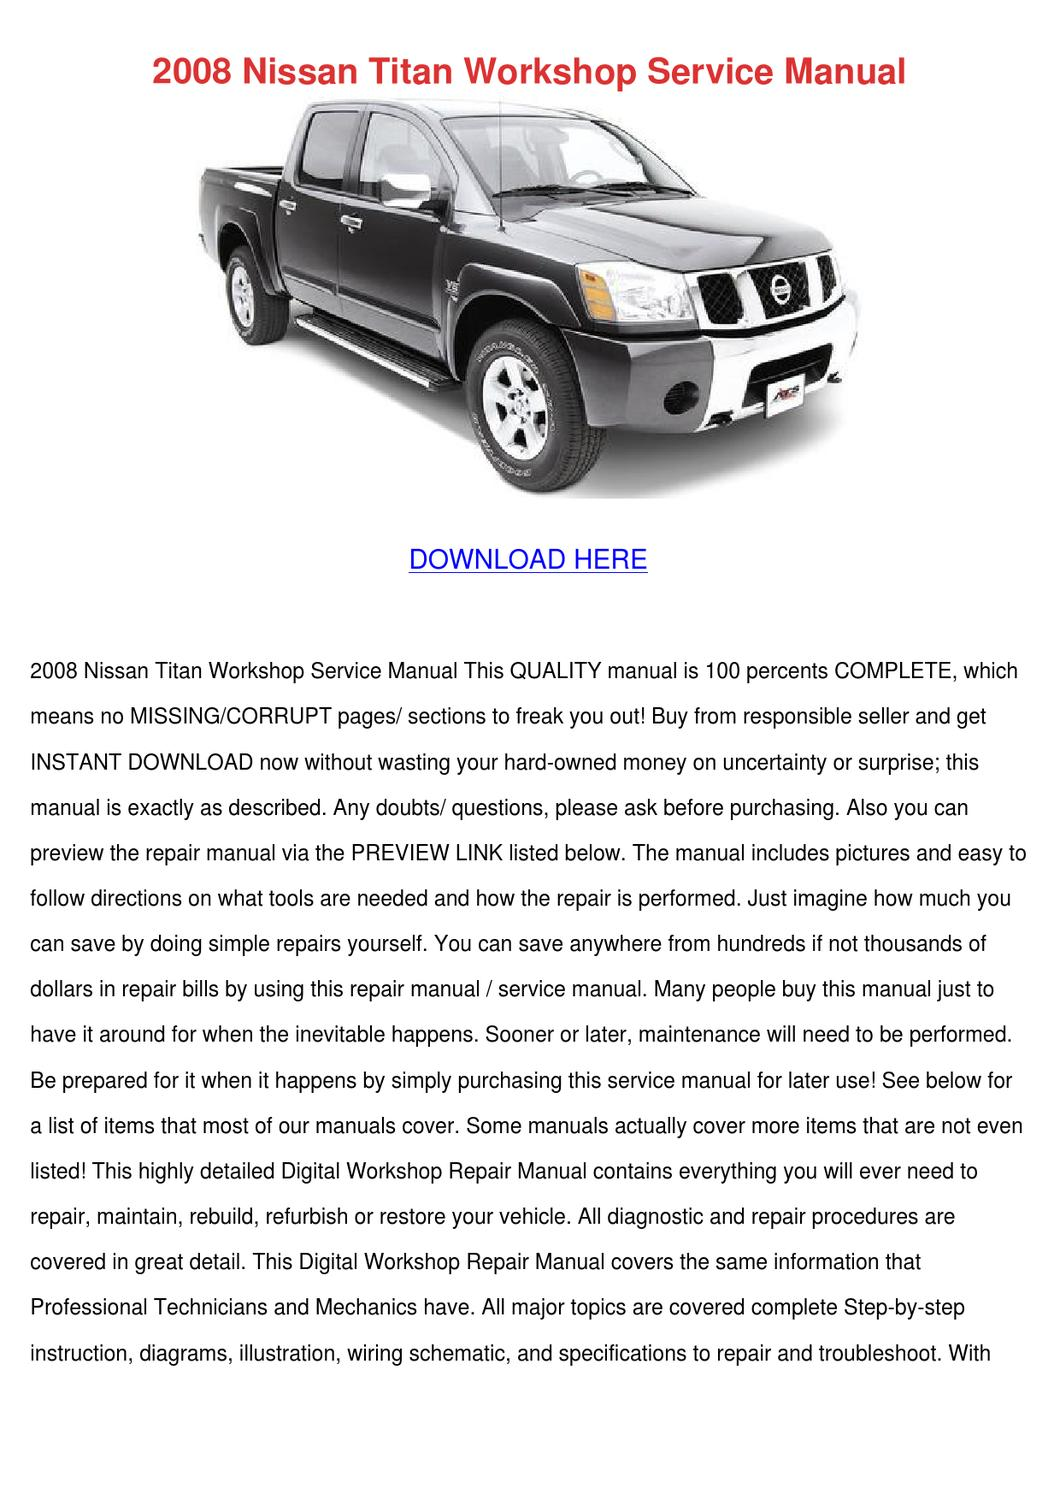 Nissan Rogue Service Manual: Preparation